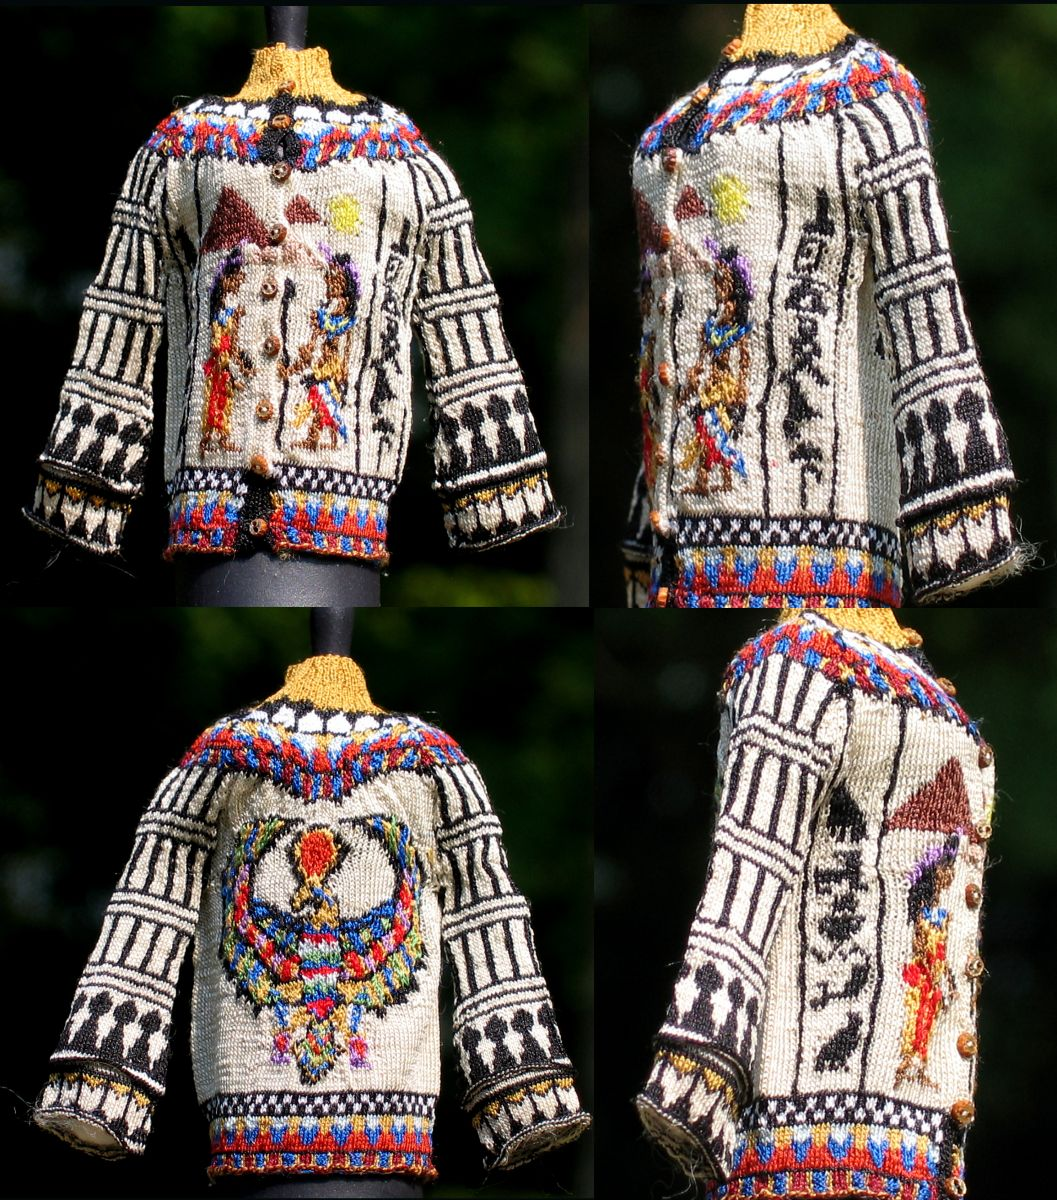 Egyptian Cardigan--Four views, by Althea Crome